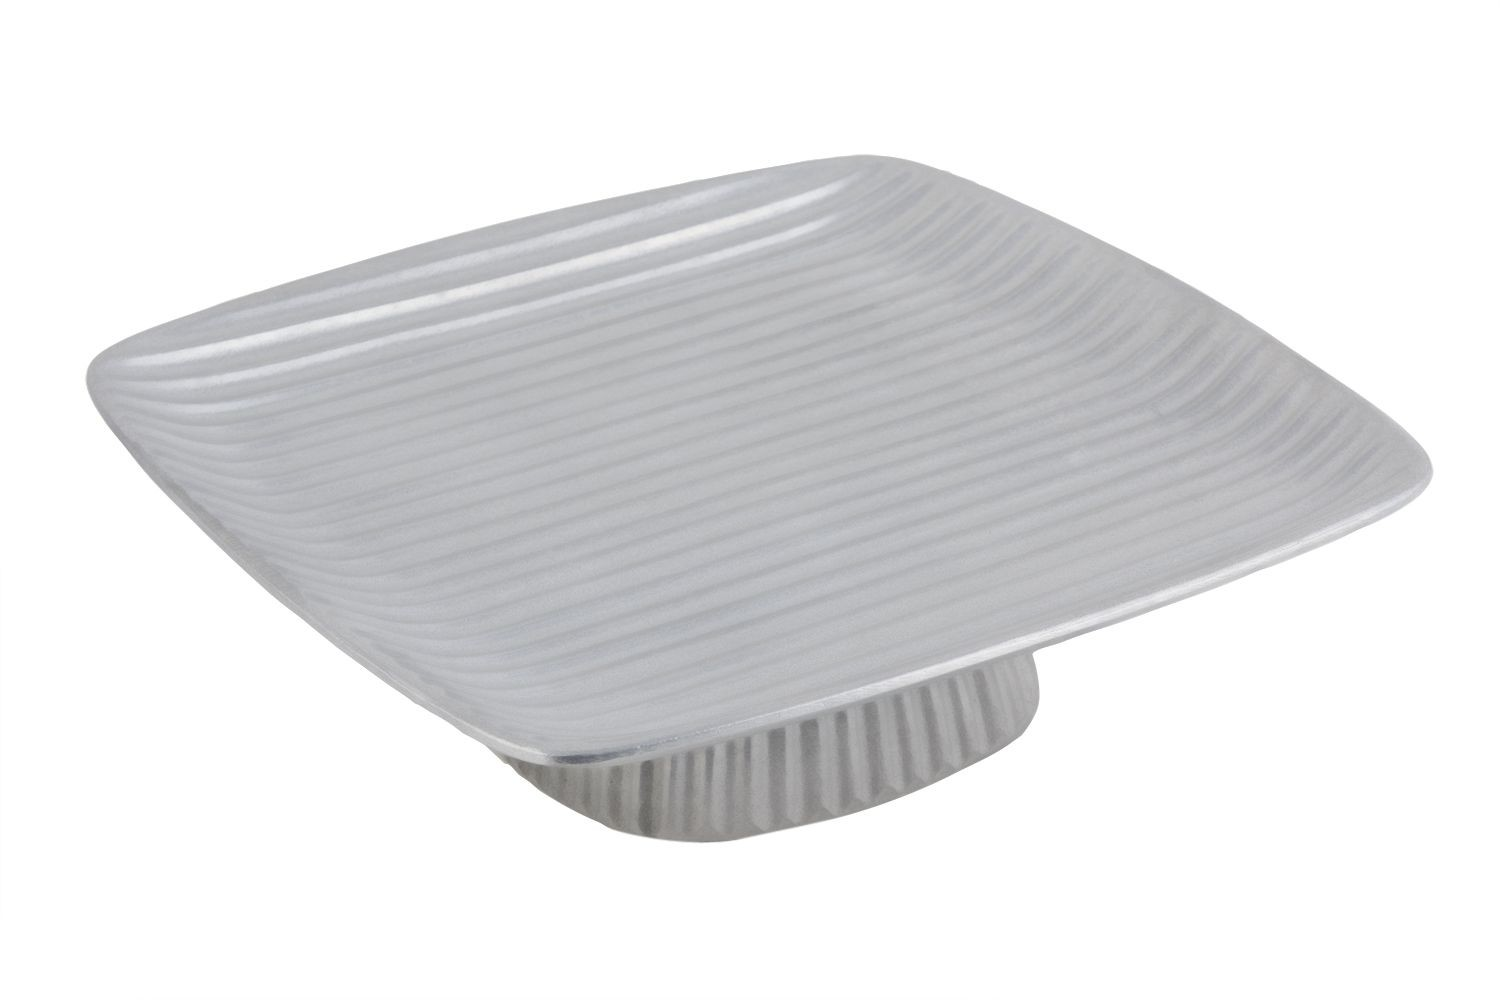 "Bon Chef 99199911P Footed Ribbed Platter, Pewter Glo 12 1/2"" x 12 1/2"" x 3"""